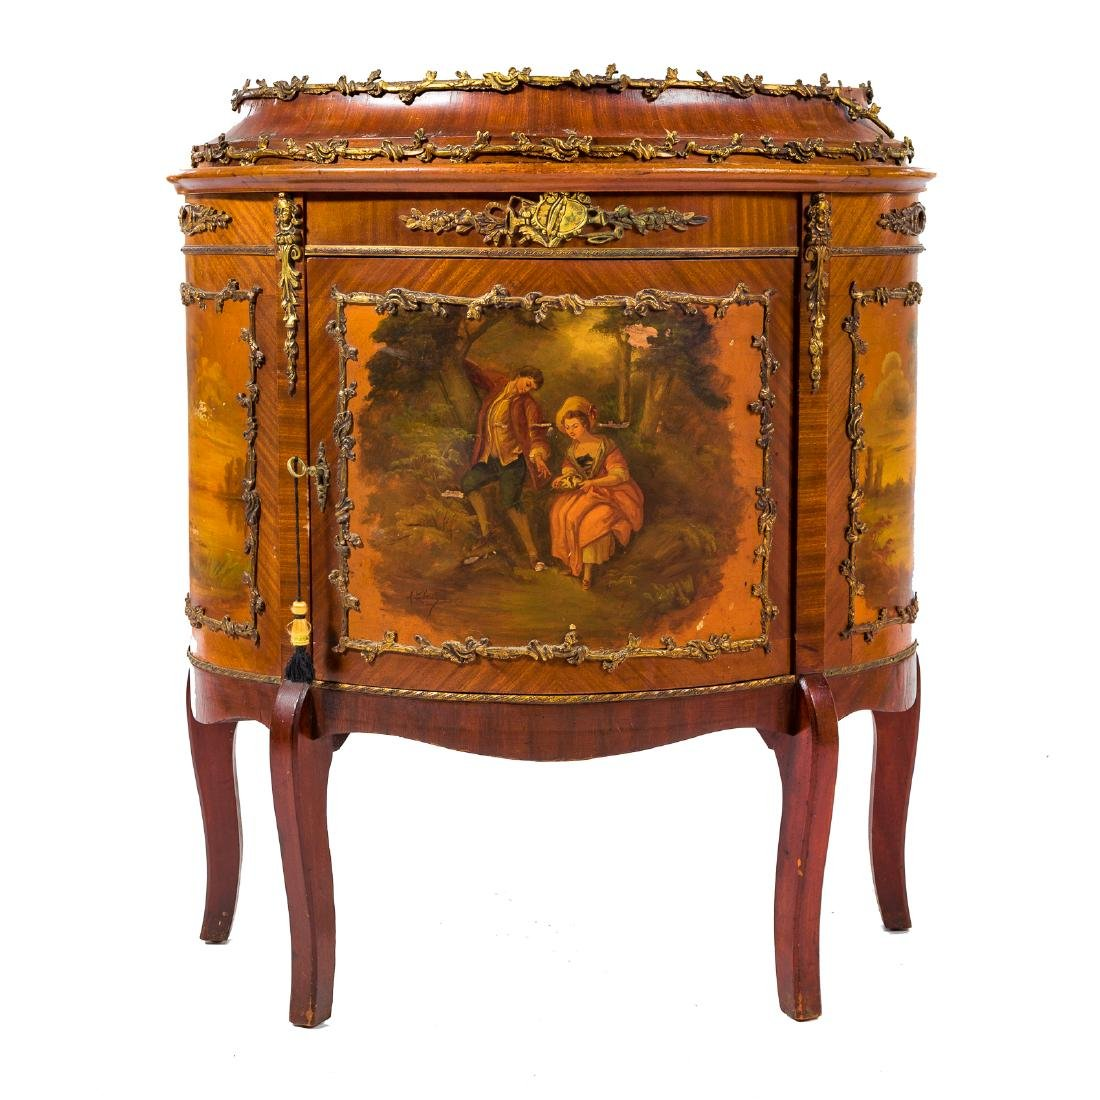 Louis XV style kingwood brass-mounted commode - 2